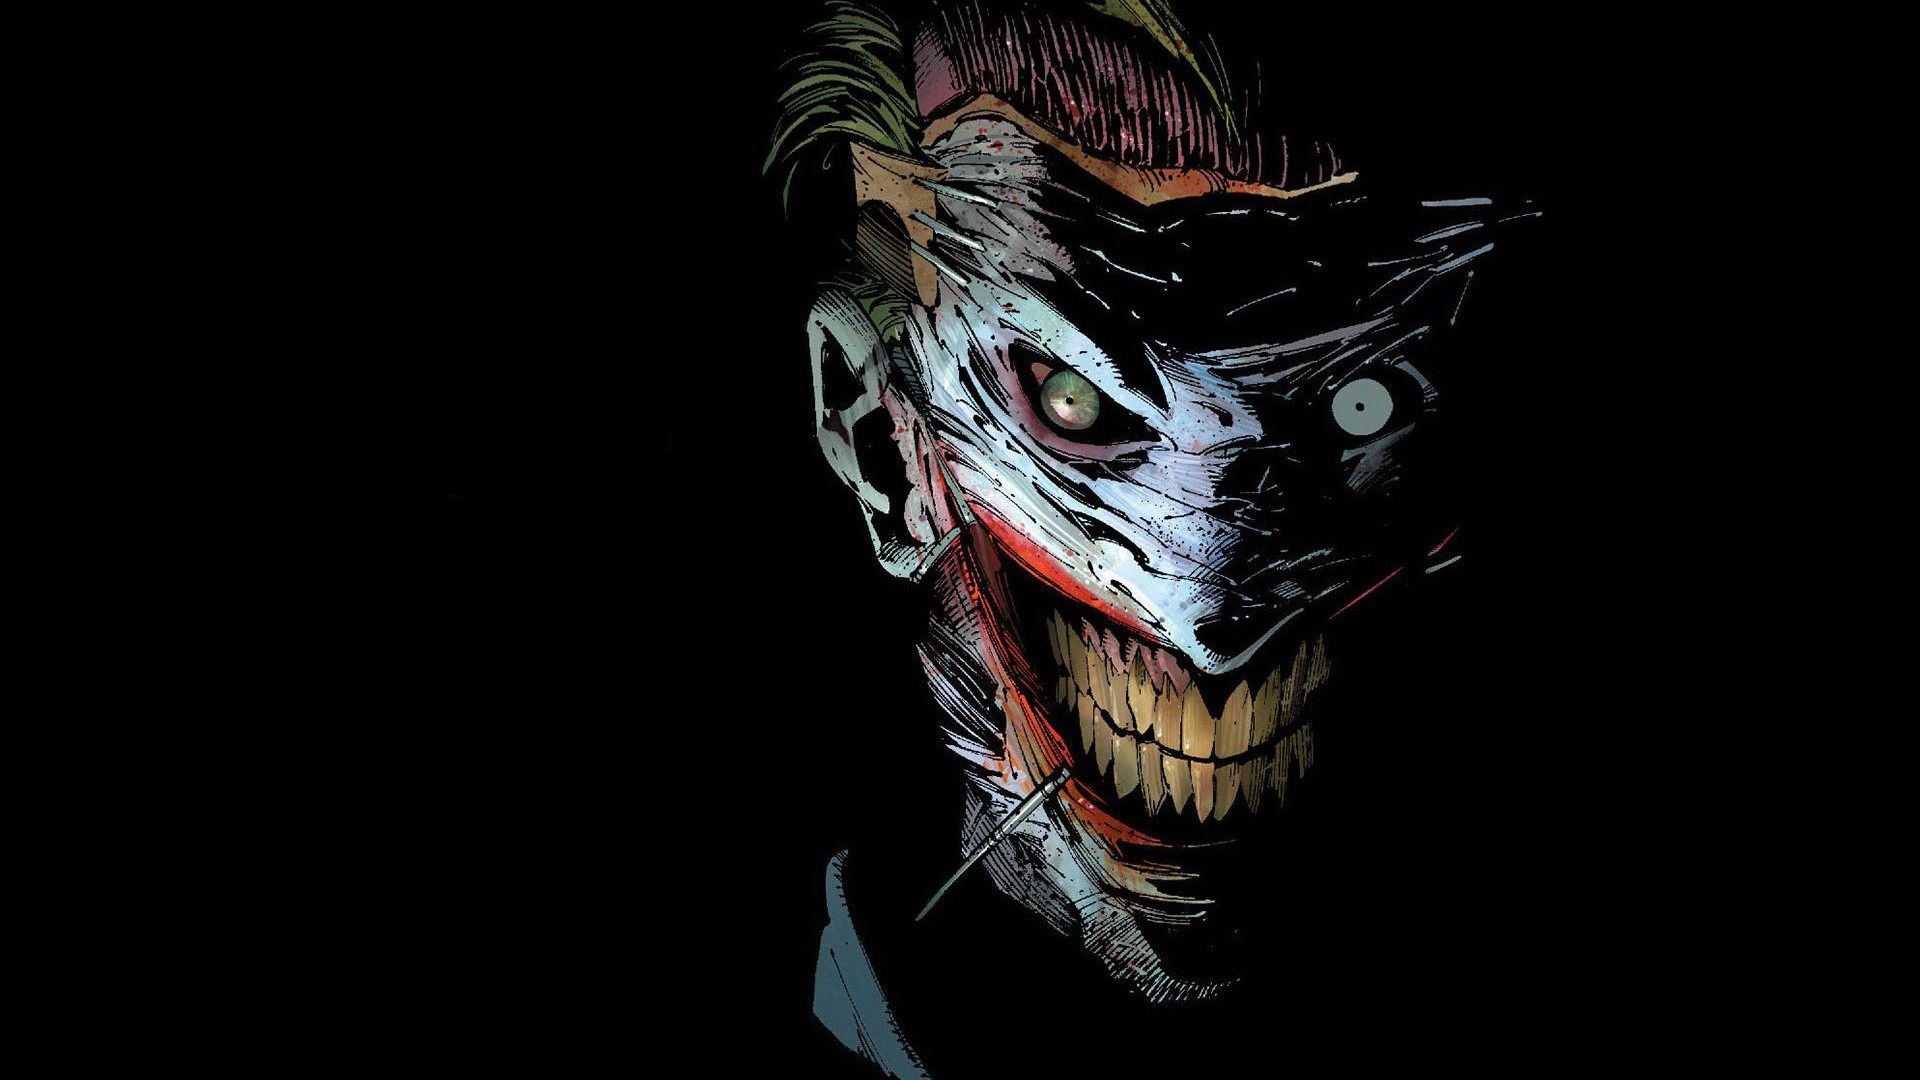 joker wallpaper tim lelek april 16 2014 epic wallpapers wallpapers 1920x1080